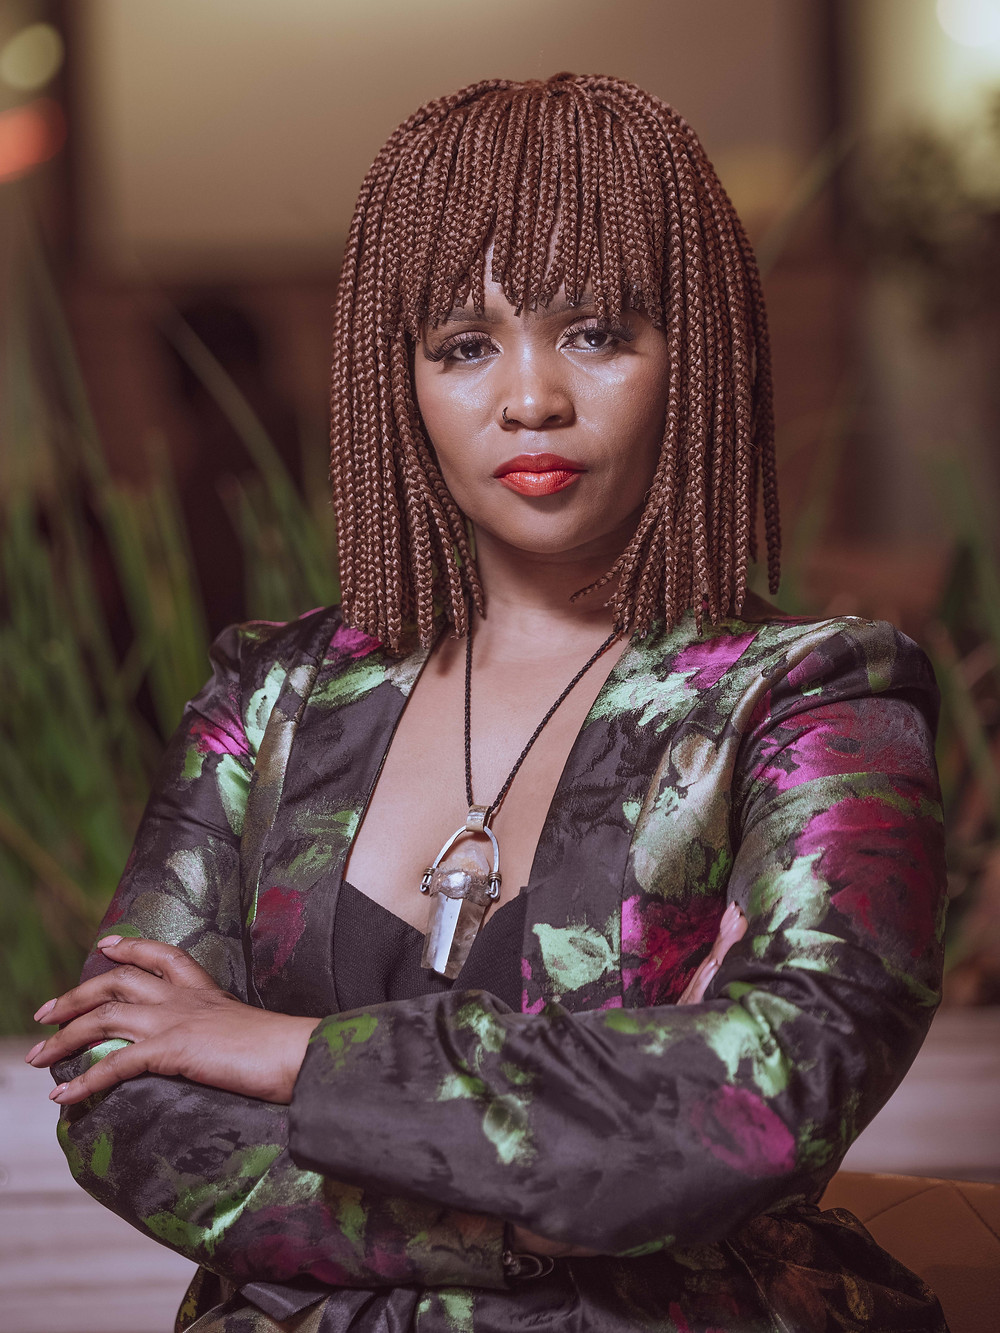 Asanda is the founder of the proudly south African, 100% female owned wine and gin brand Assundur.